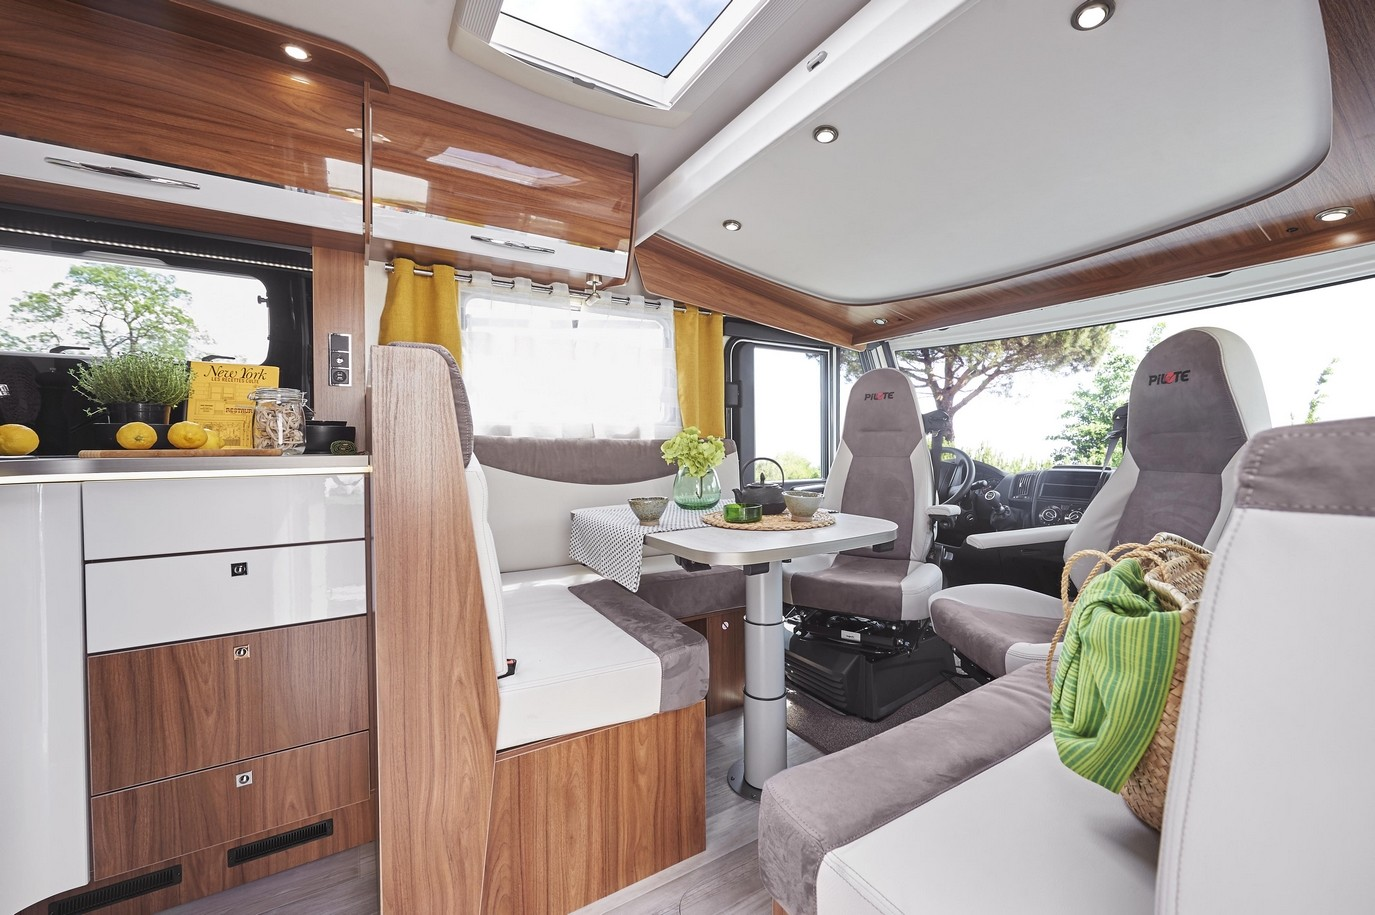 Fiat Ducato 4x4 Camper Price >> 2017 Fiat Ducato Fuel Tank Capacity - New Car Release Date and Review 2018 | mygirlfriendscloset